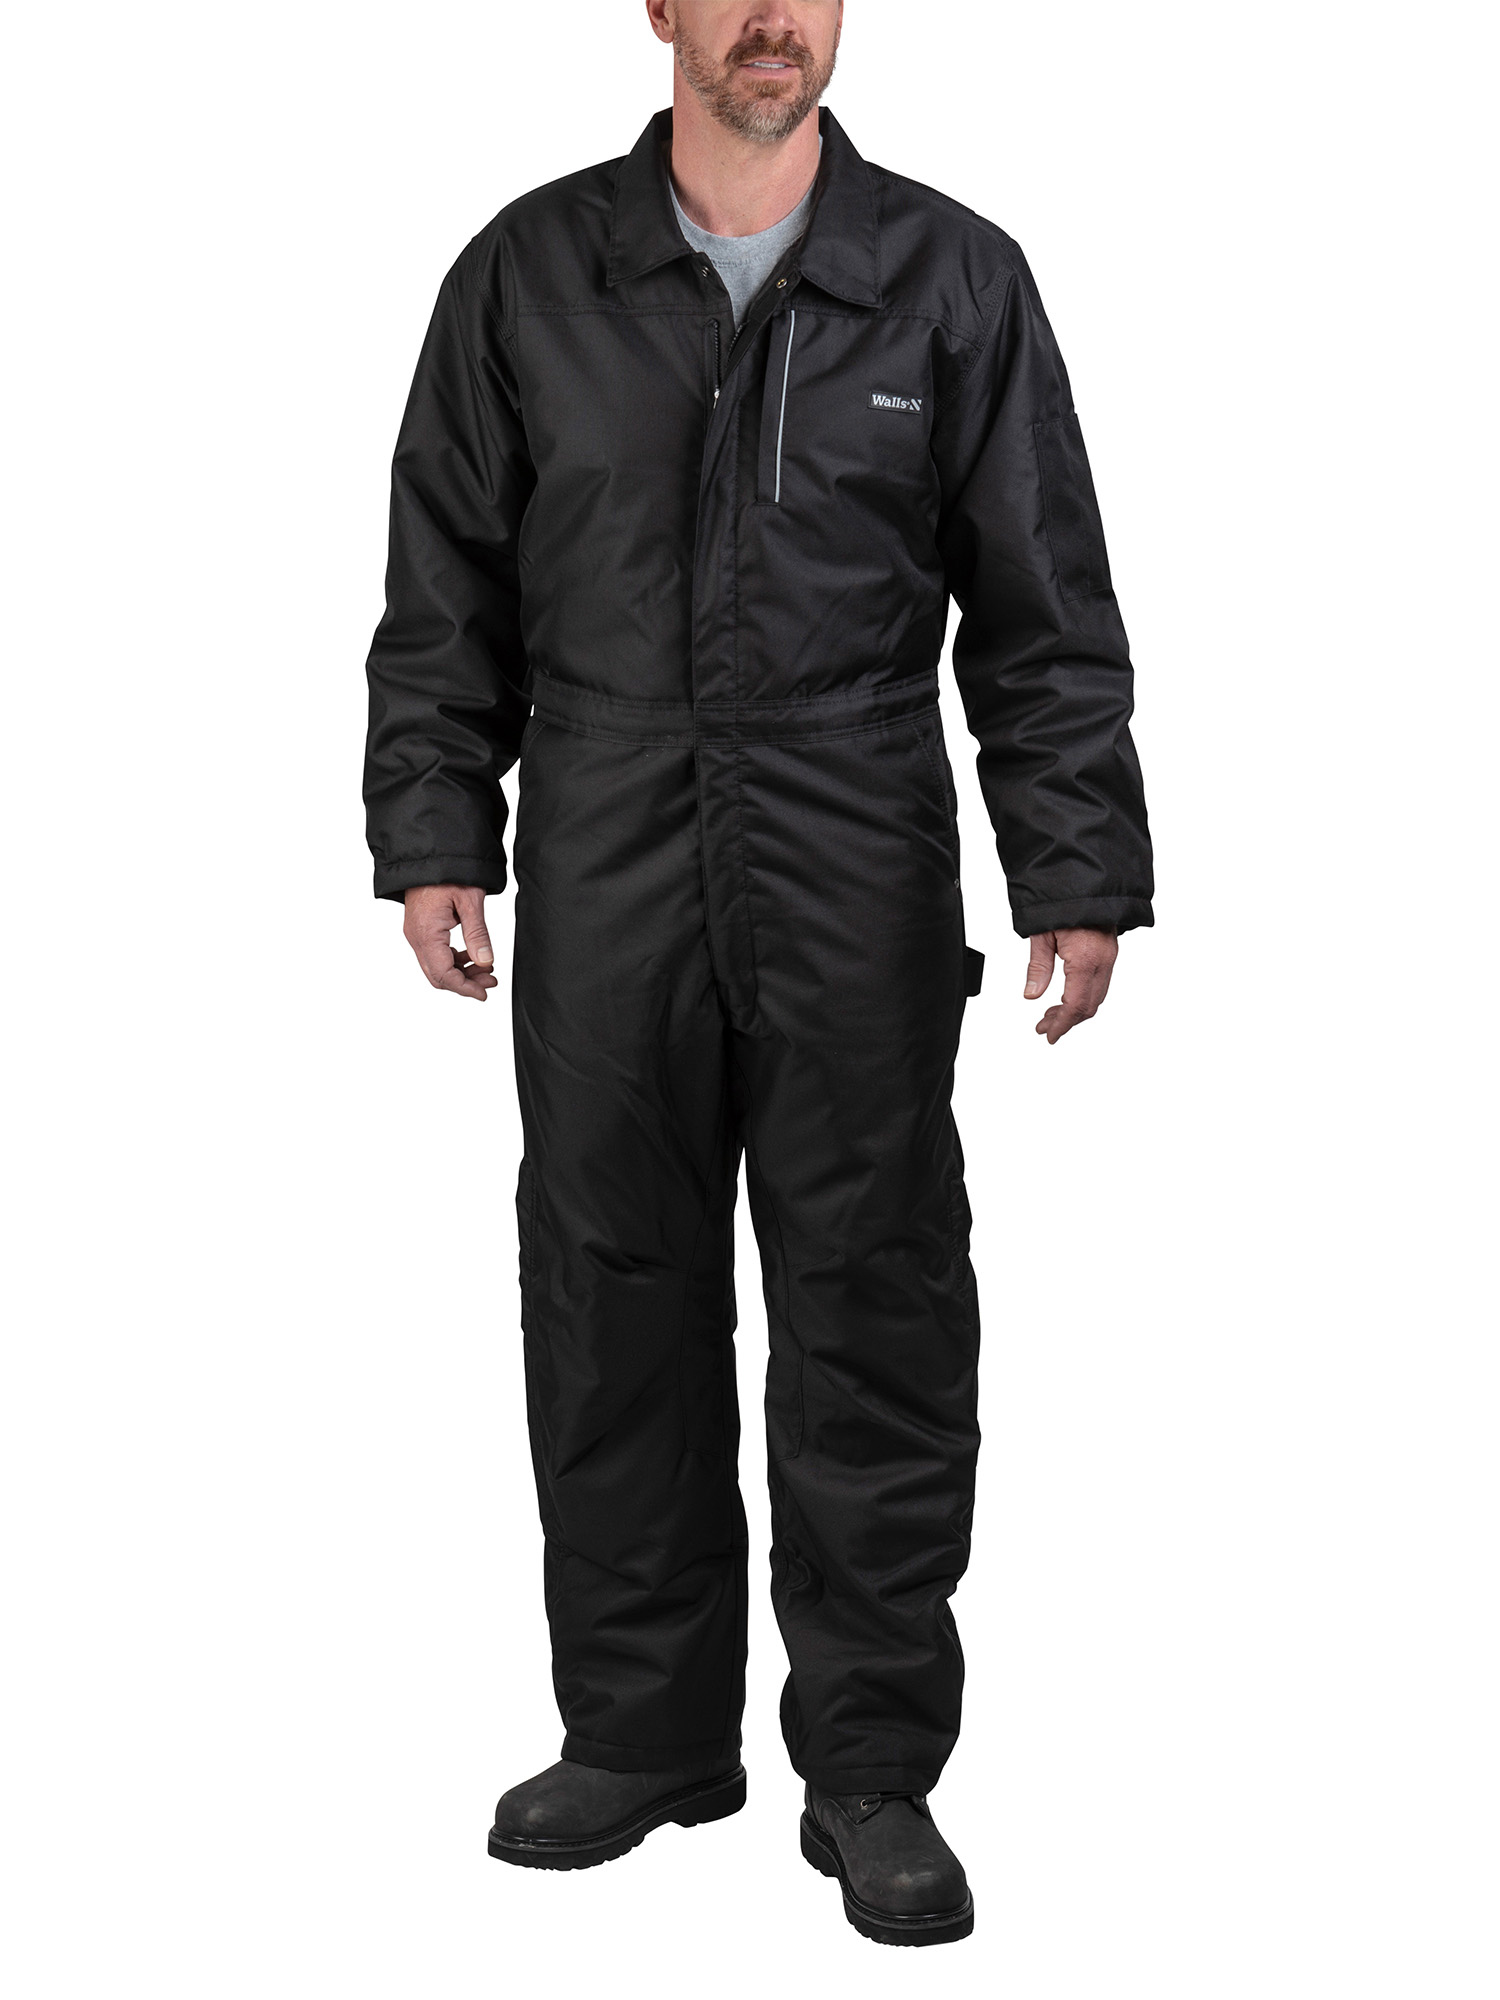 Big Men's Enduro Zone Poly Duck Insulated Coverall